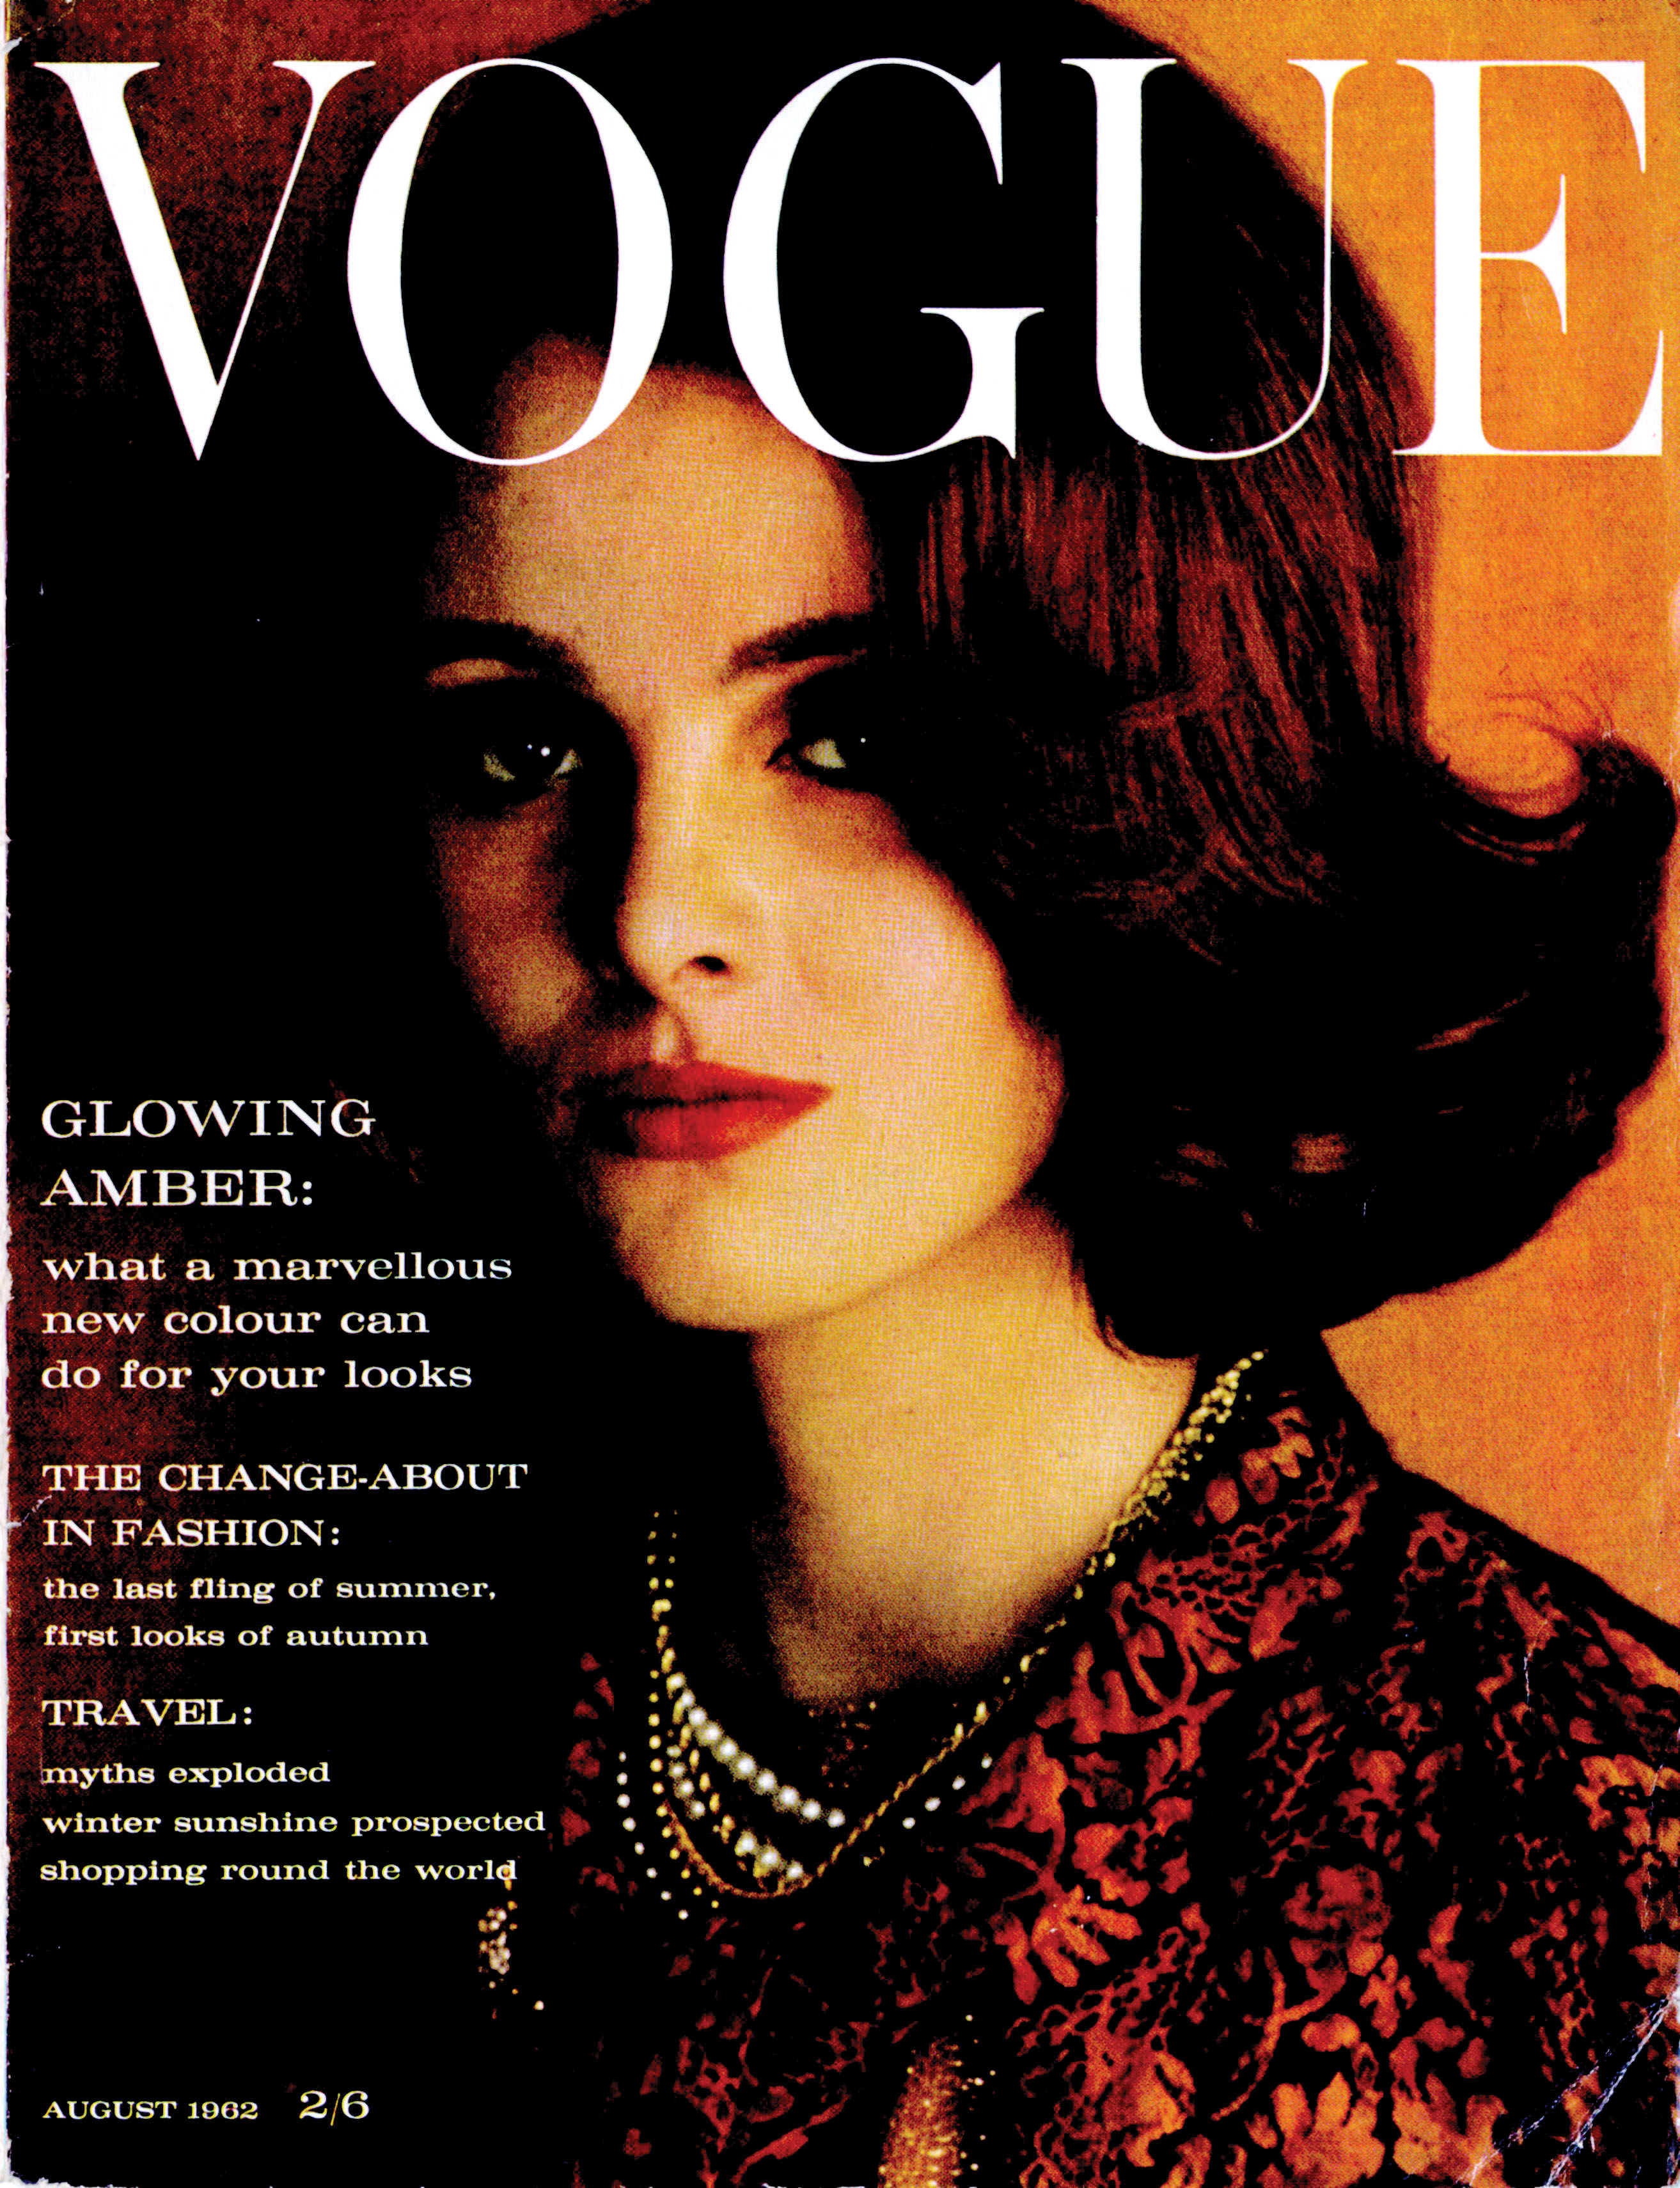 623a43d65e76 Grace Coddington on cover of Vogue magazine, Jan 12, p125